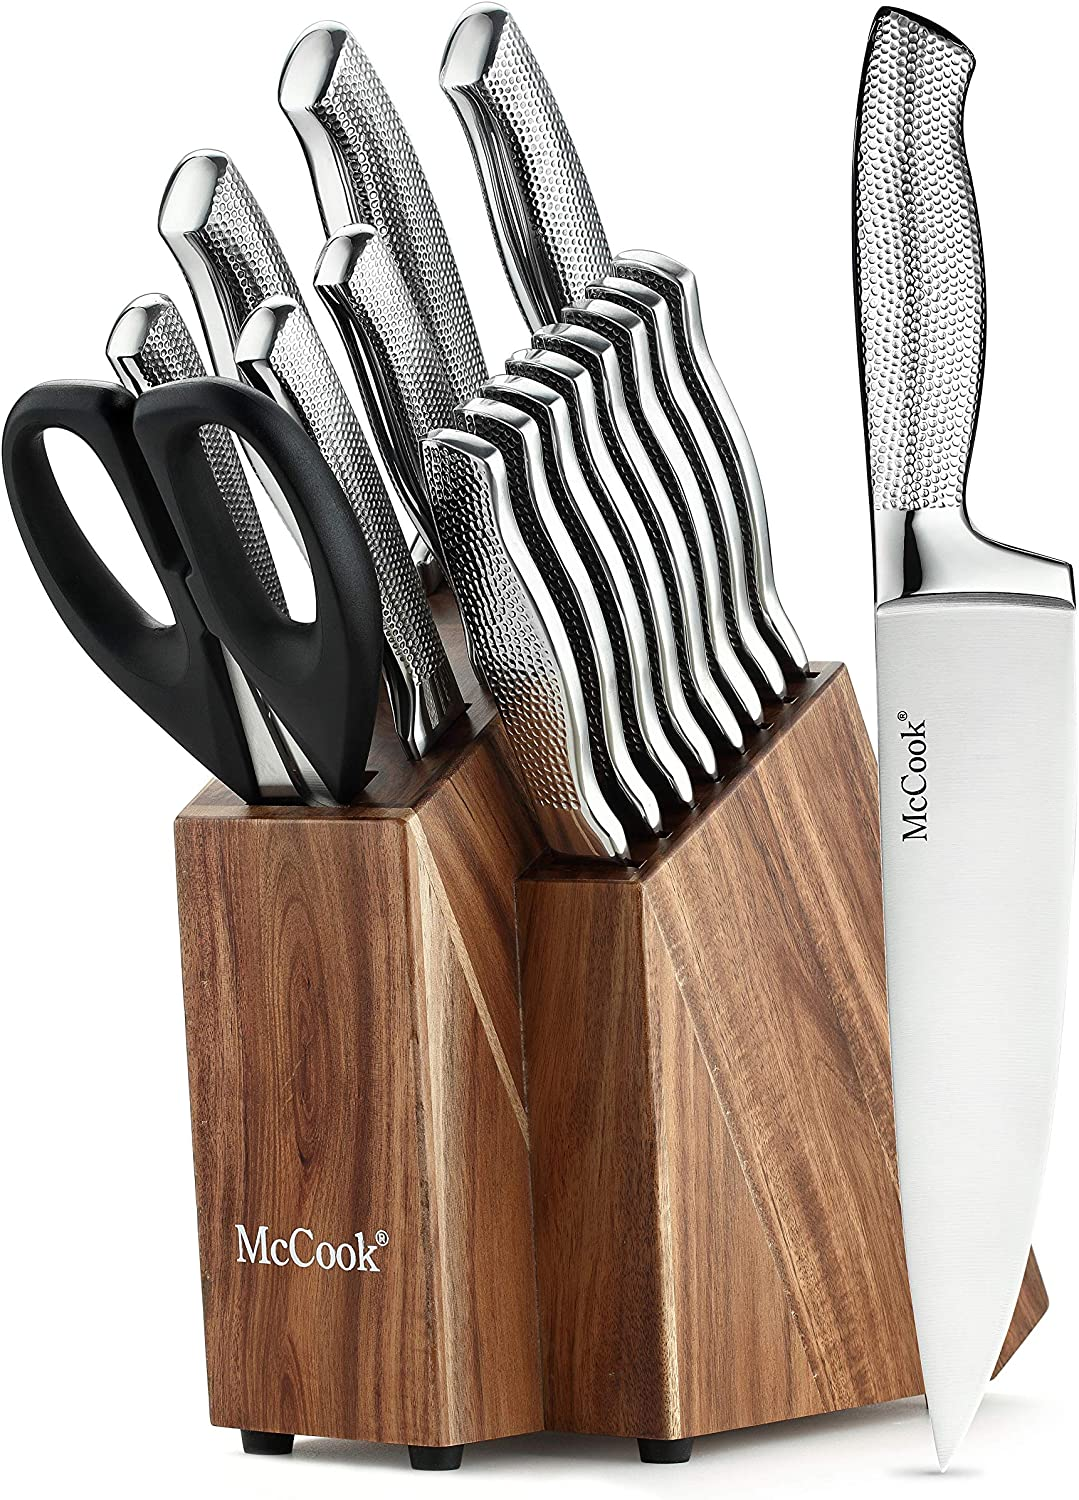 McCook MC20 Premium Knife Sets,17 Pieces Full Tang Hammered German Stainless Steel Kitchen Knife Set with Acacia Block